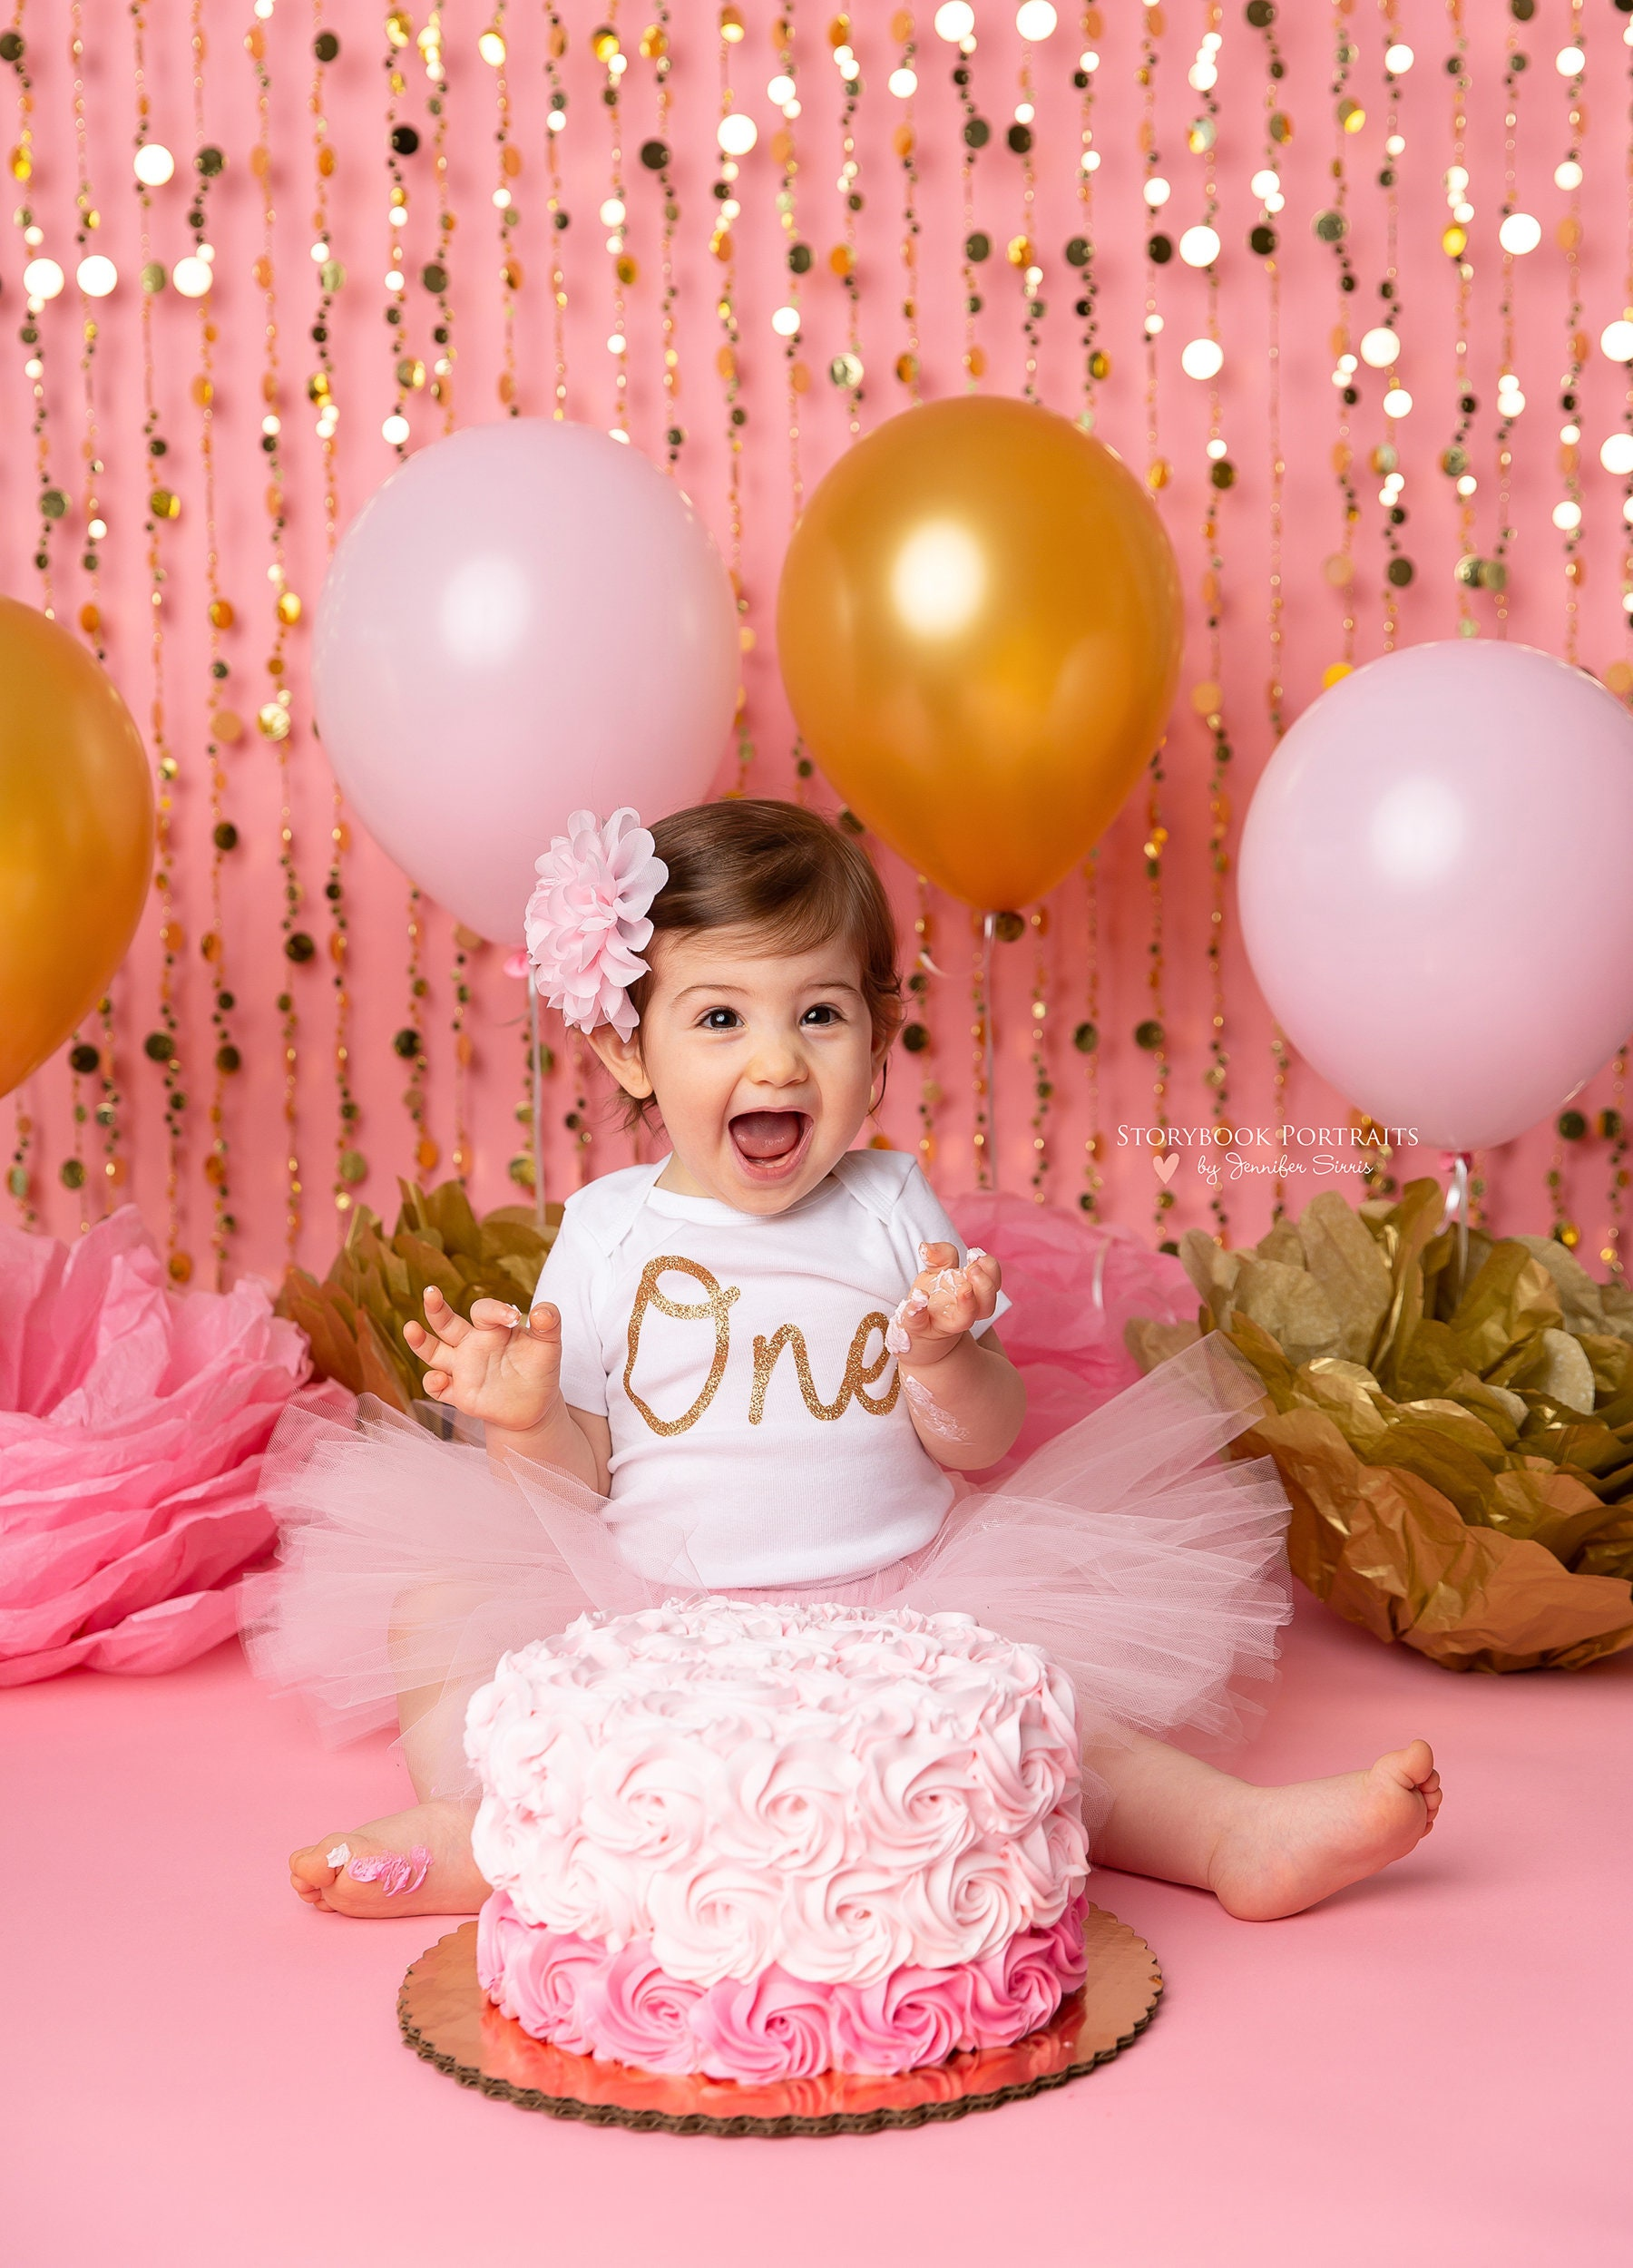 Wondrous Pink And Gold First Birthday Outfit Girl Cake Smash Outfit Etsy Funny Birthday Cards Online Alyptdamsfinfo